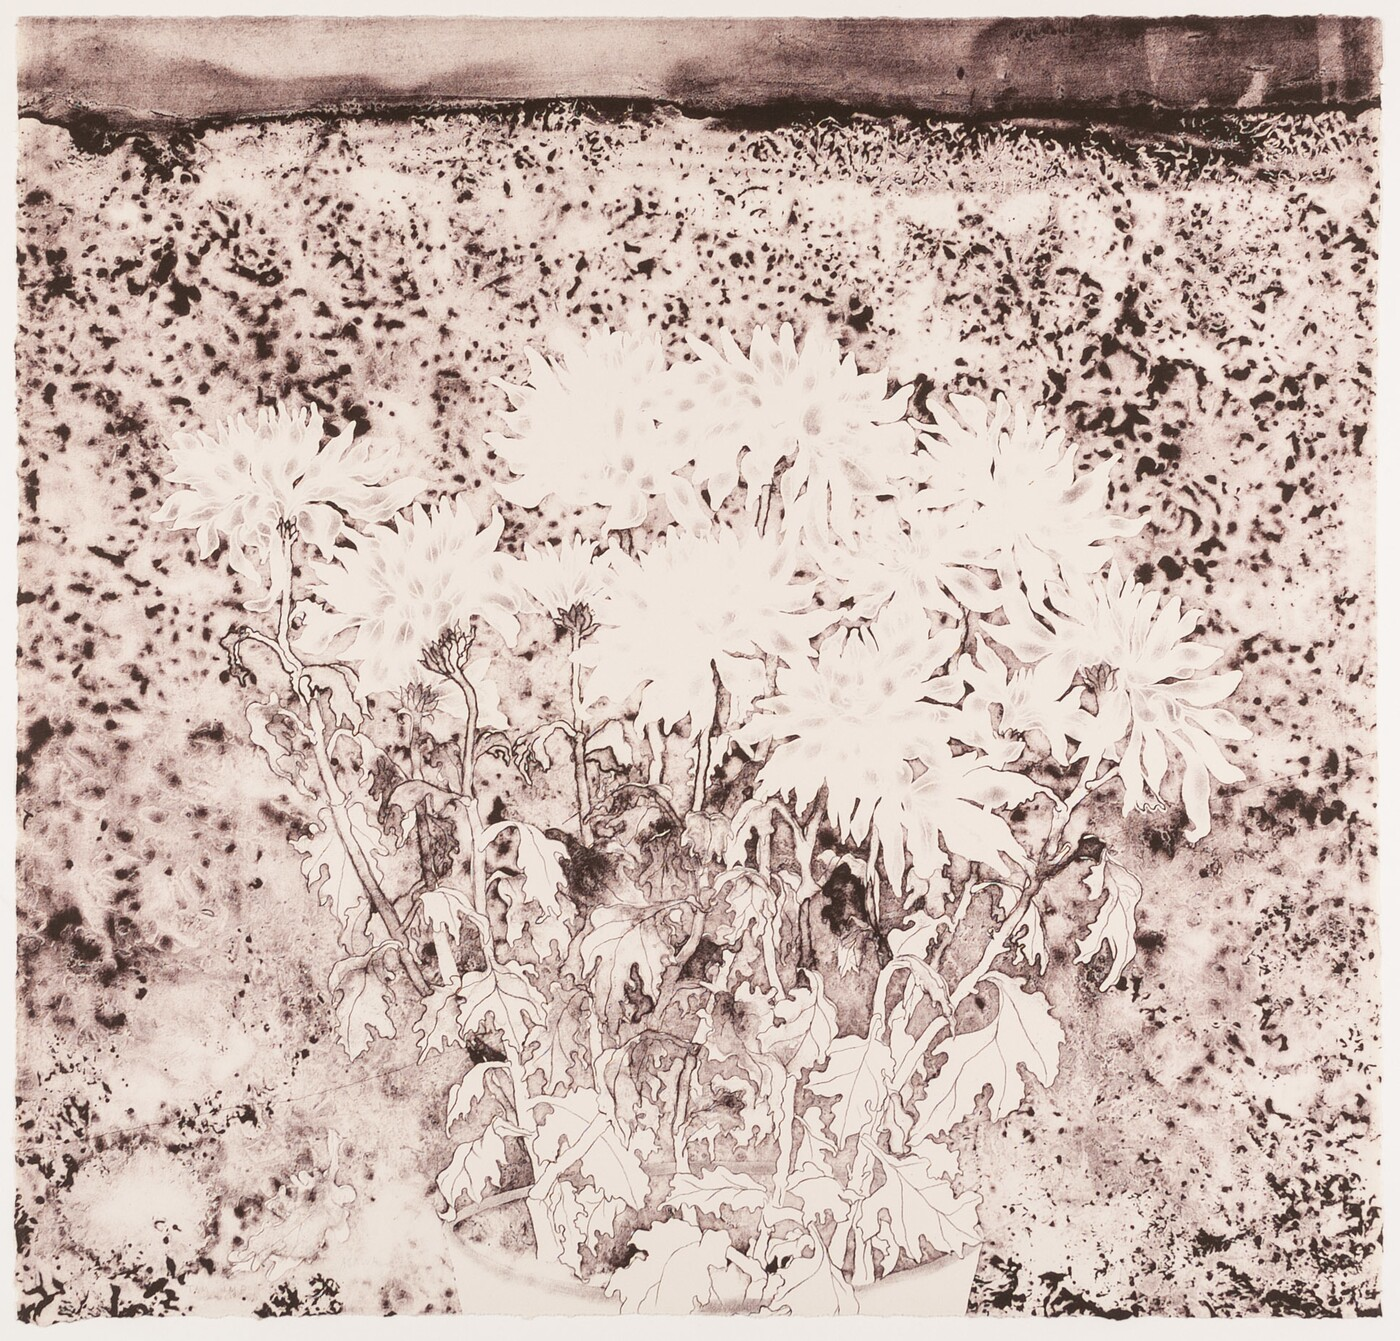 A lithograph depicting a field of flowers in dark brown/black and white